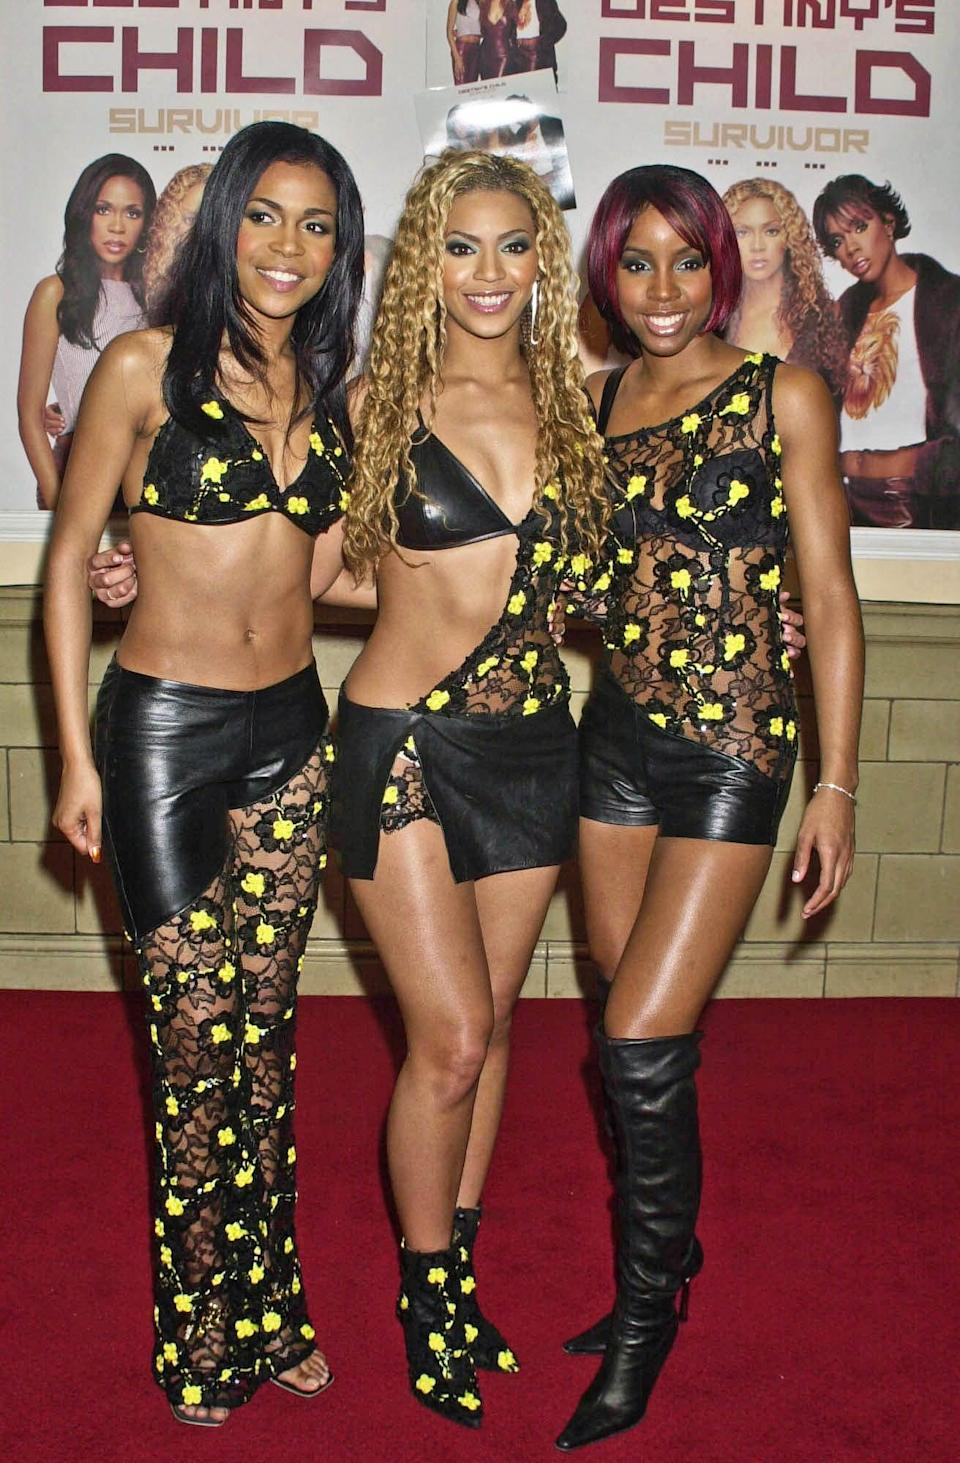 <p>In 2001, wearing coordinated black leather outfits with floral lace accents.</p>